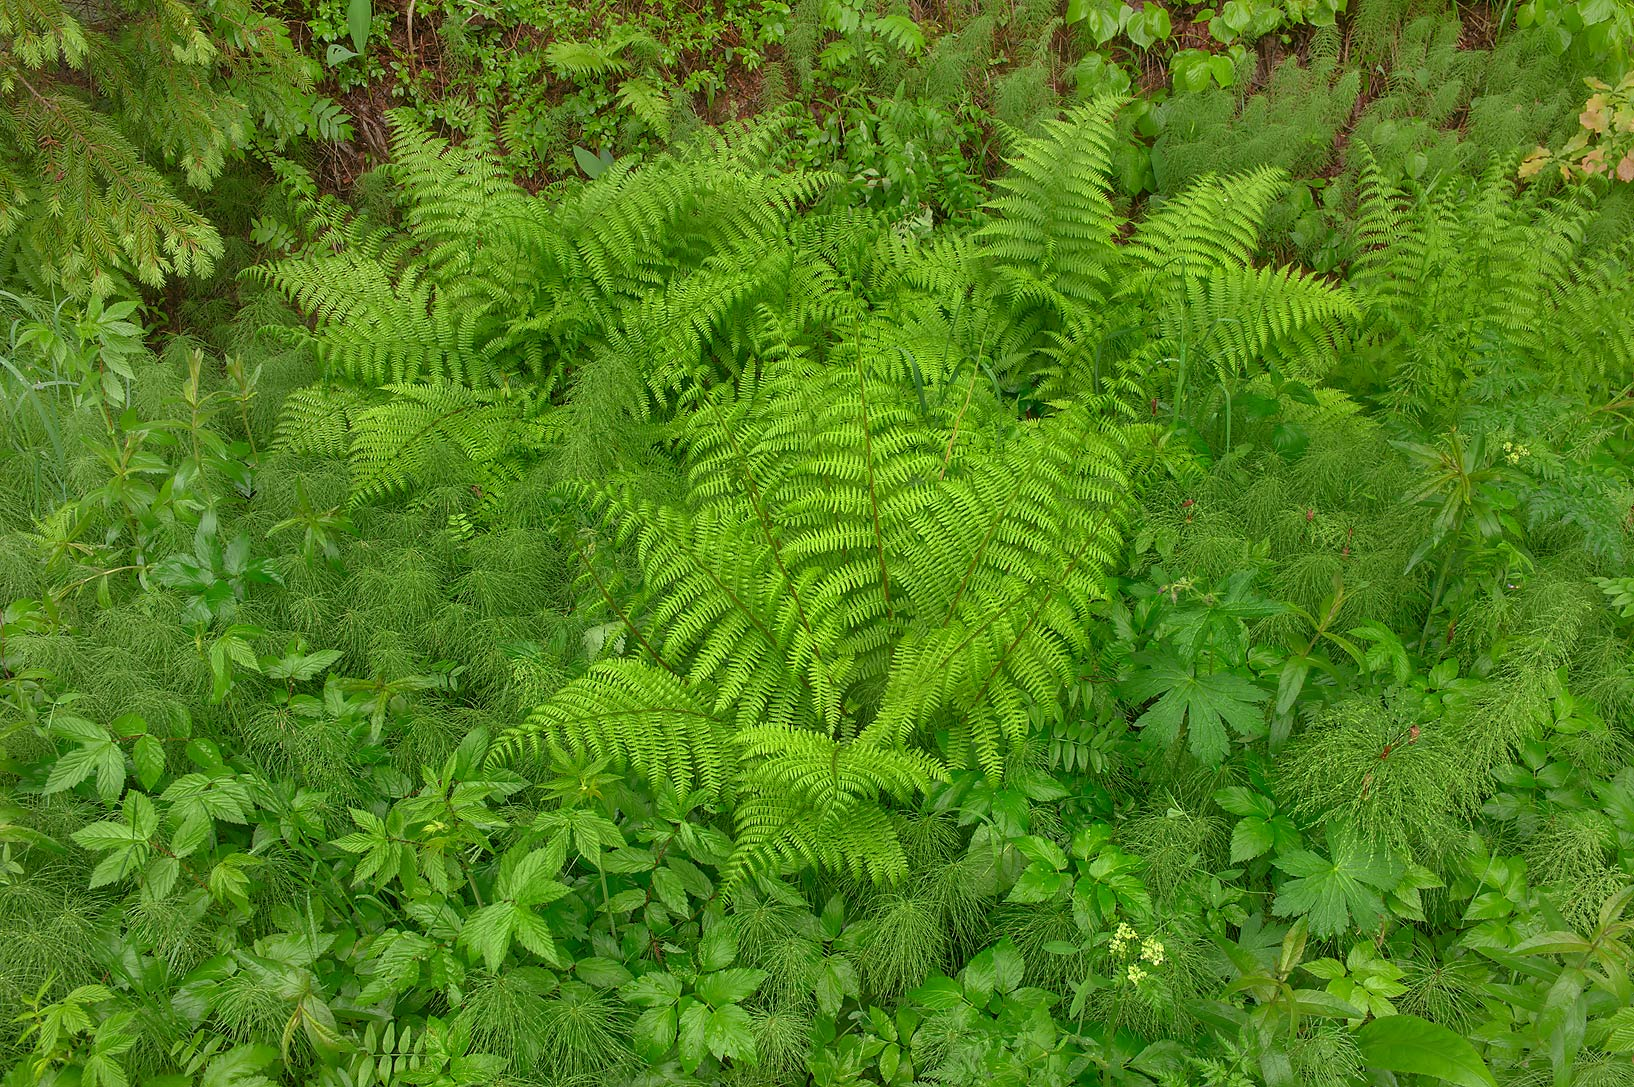 Ferns and horsetail near Angliyskaya Alley in...suburb of St.Petersburg, Russia